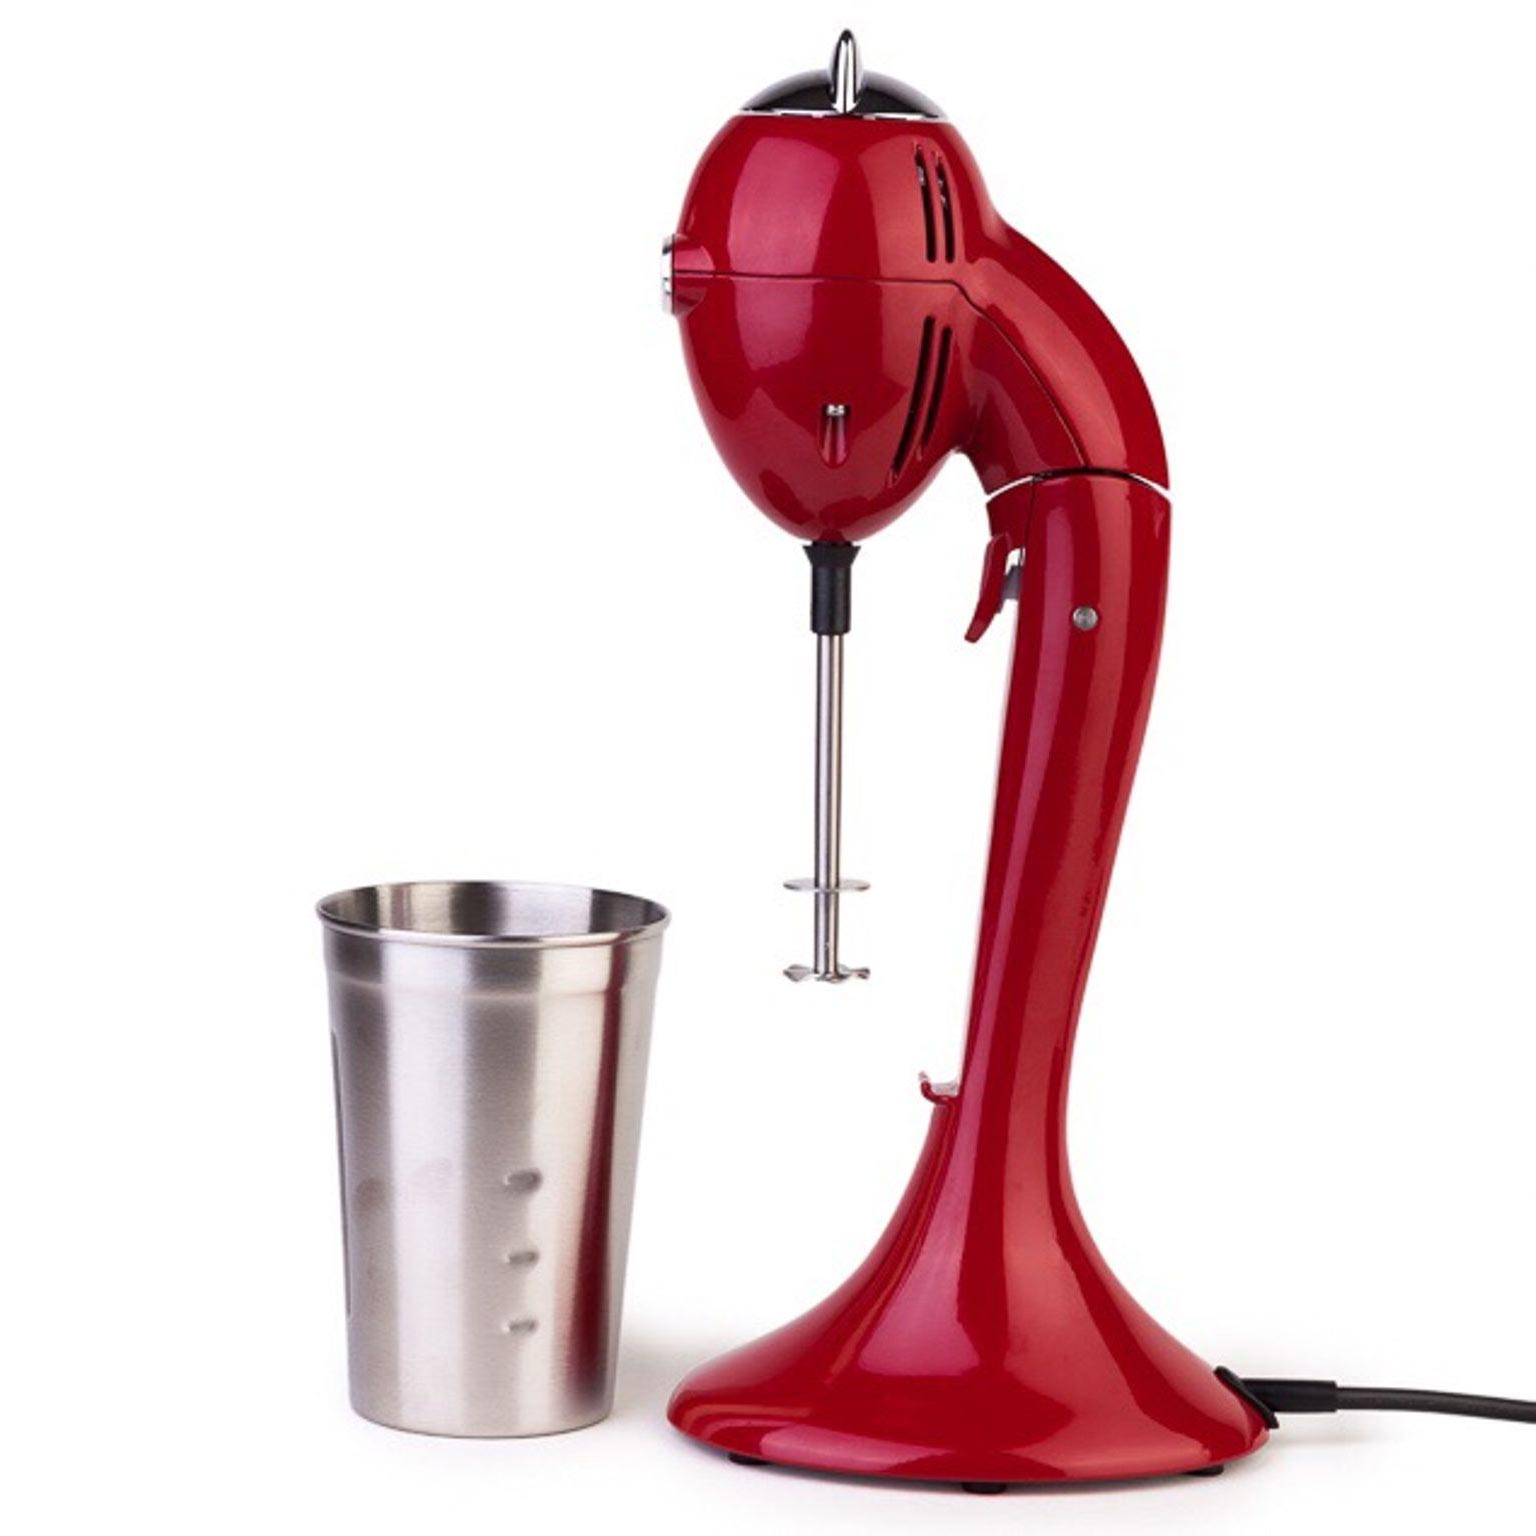 H4 Blender Stabmixer Profi Cocktail Set